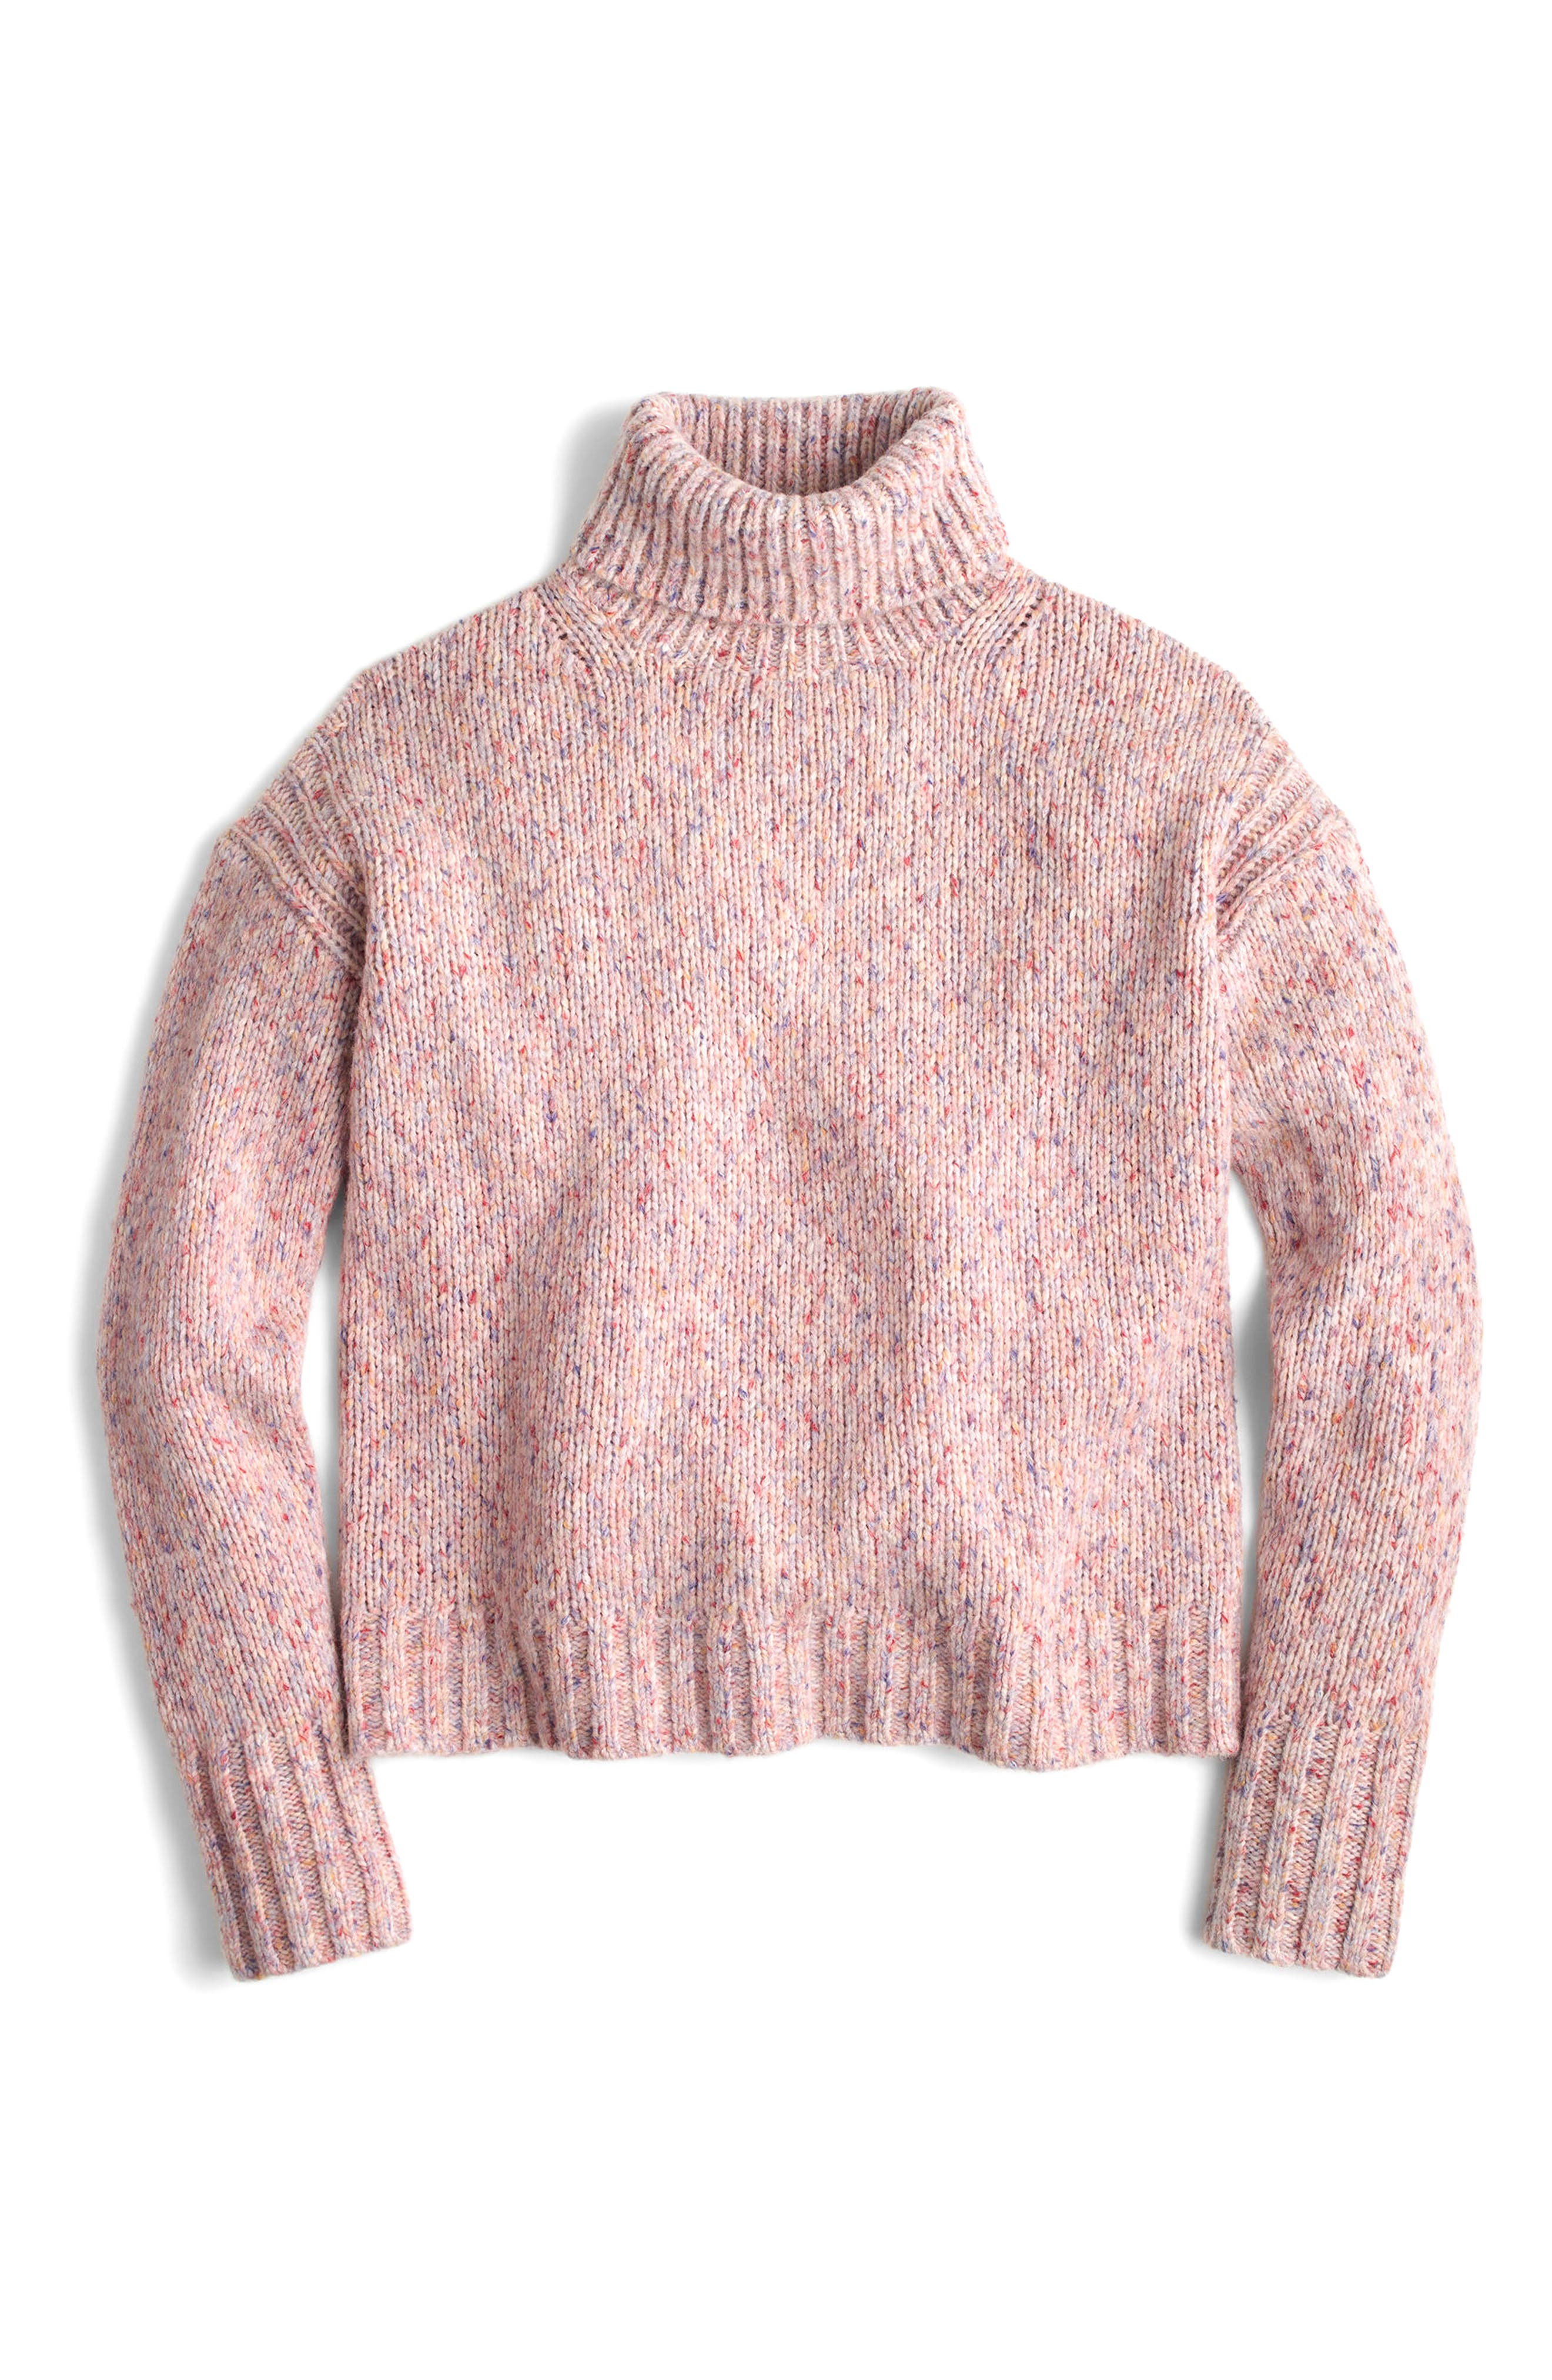 J.Crew Marled Wool Blend Turtleneck Sweater,                             Alternate thumbnail 4, color,                             Marled Confetti